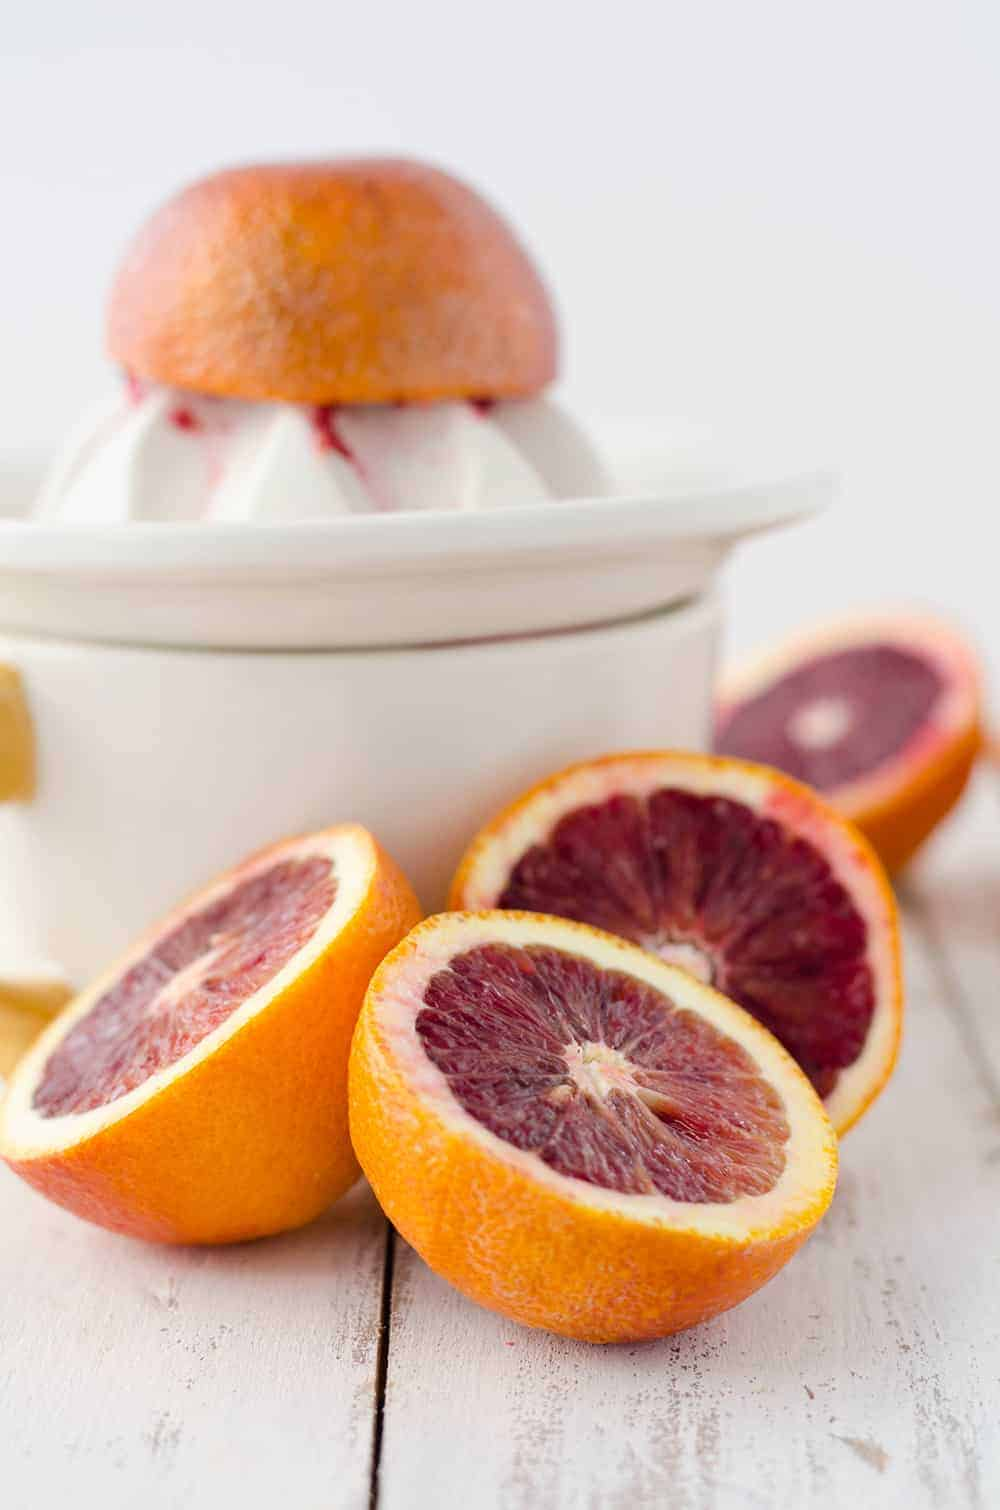 Blood Orange Chia Pudding Parfaits! Make ahead breakfasts! Layers of blood orange chia jelly with vanilla yogurt. Make them before for an easy grab and go breakfast option!   www.delishknowledge.com